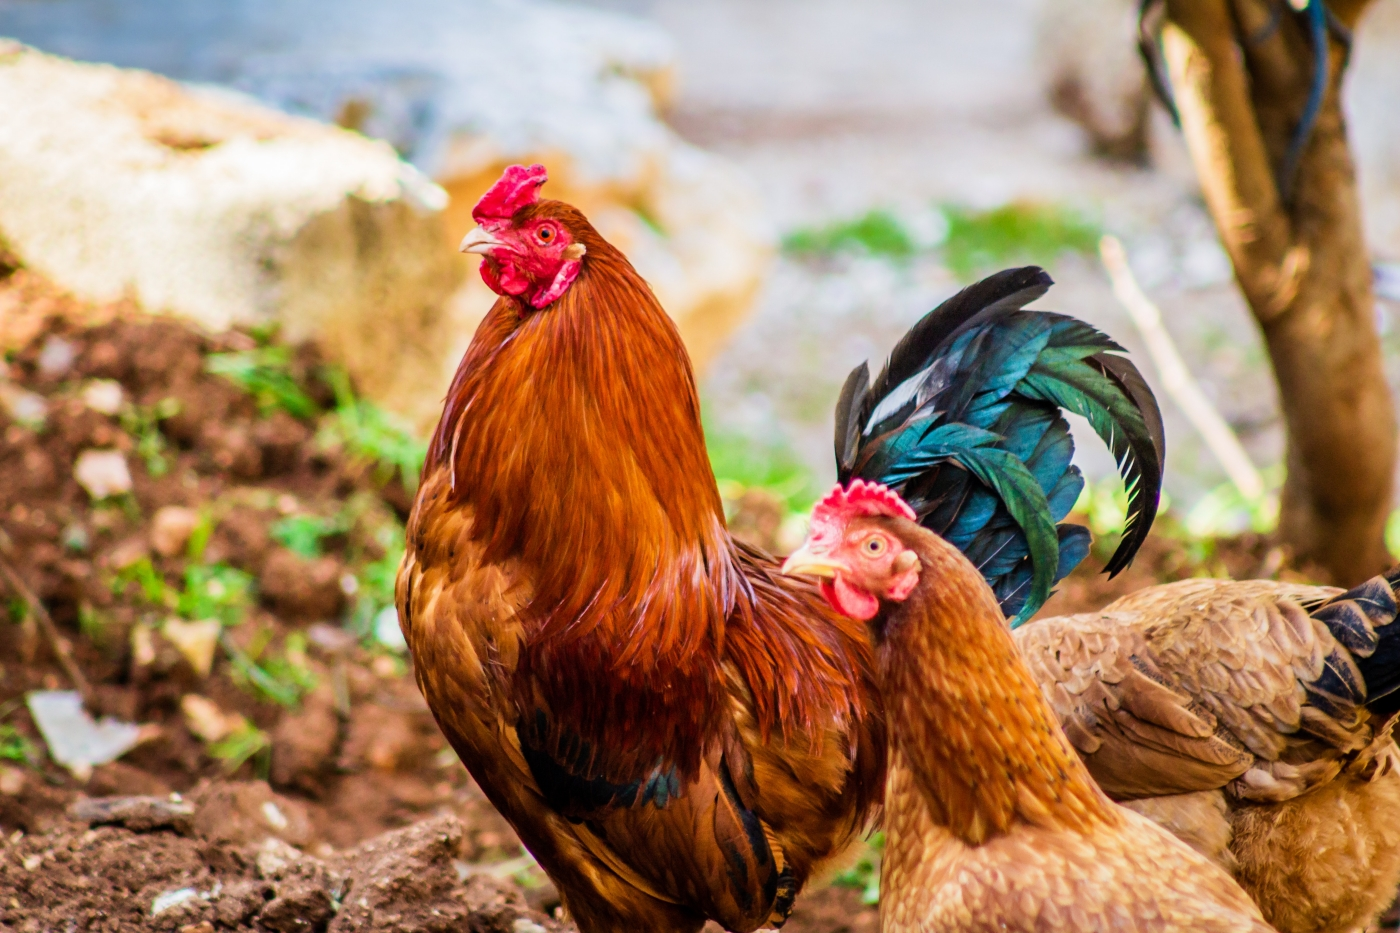 Avian Influenza Outbreak: How Safe Is It To Eat Poultry Meat, Eggs? – The Wire Science